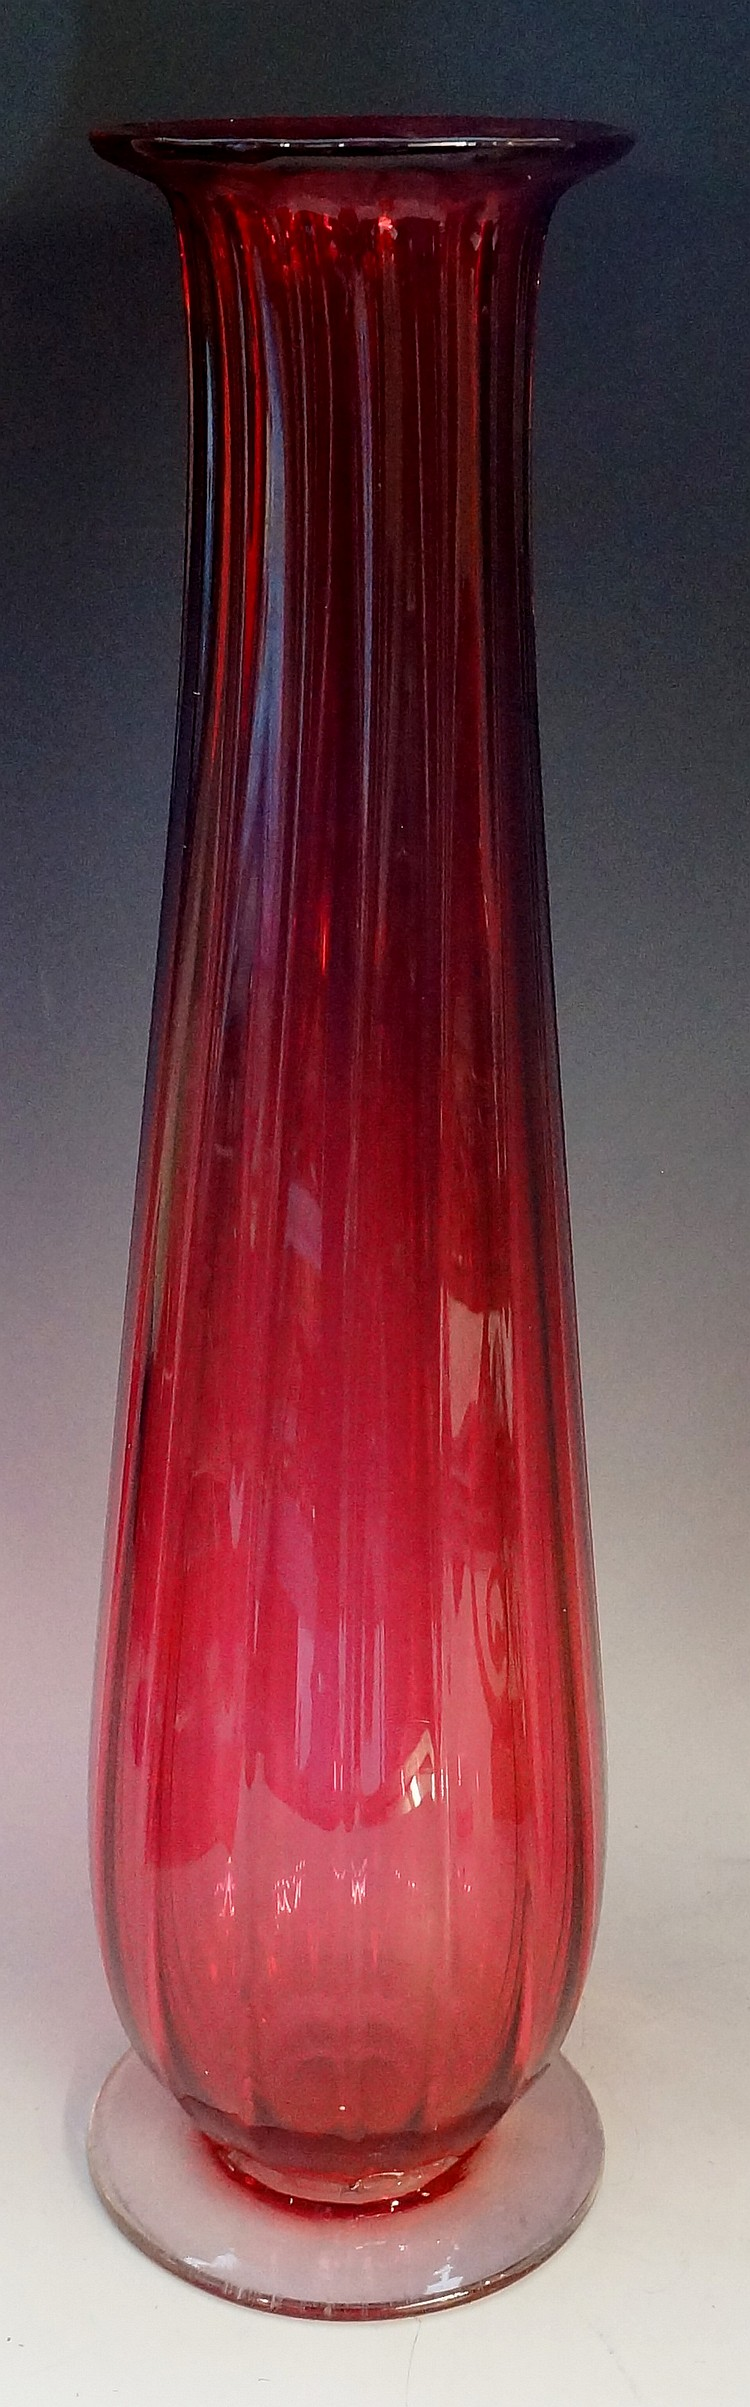 A tall fluted cranberry glass vase, applied clear circular foot with smooth